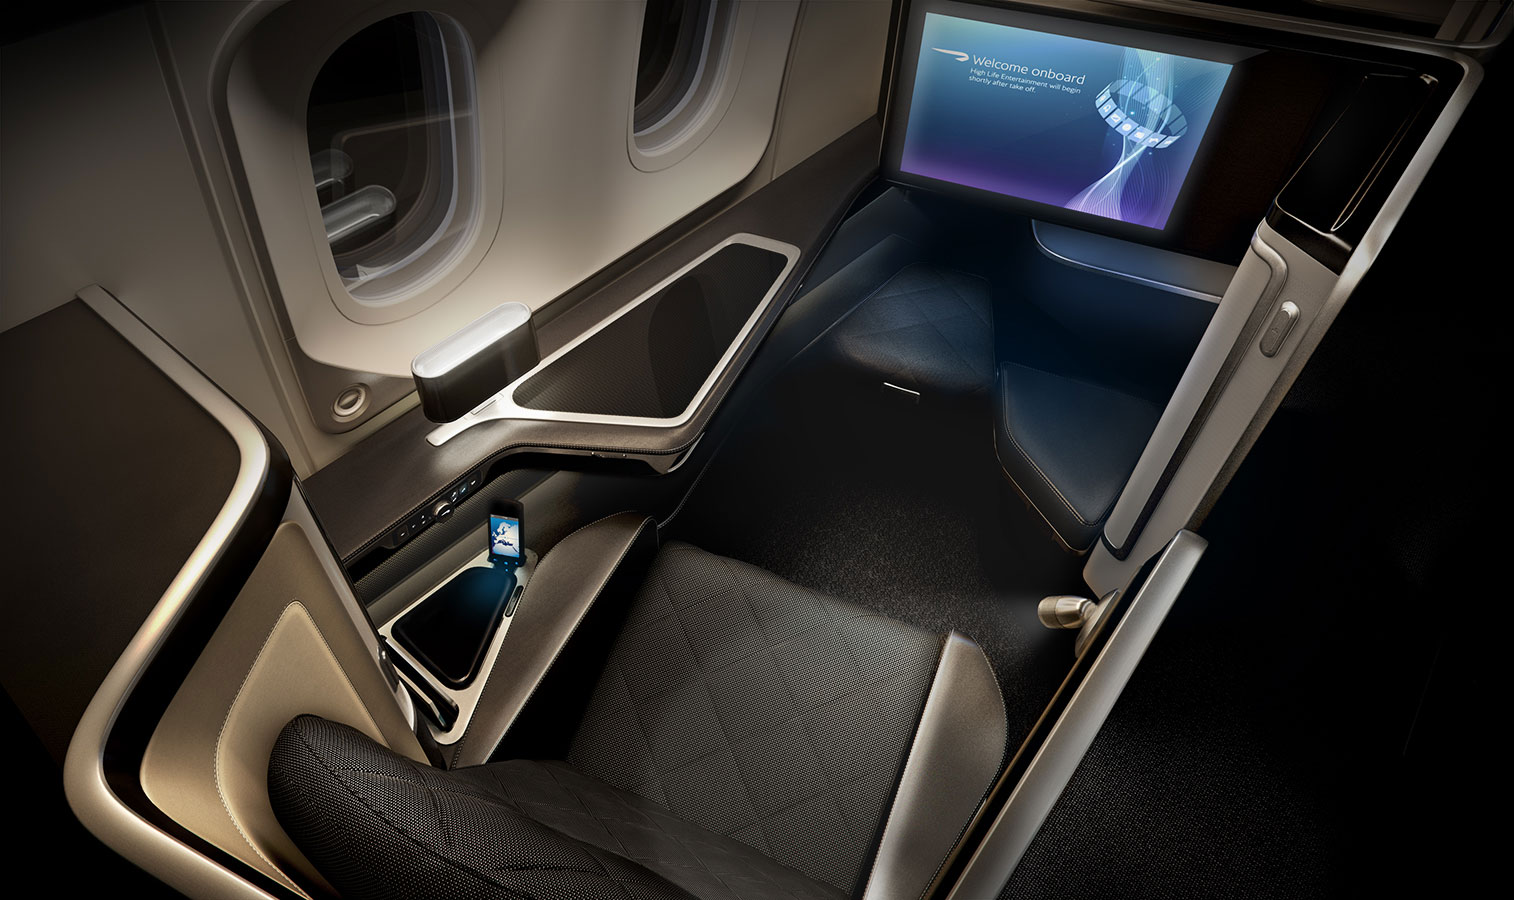 The new height of luxury is 50,000 feet thanks to British Airways' First Cabin 8